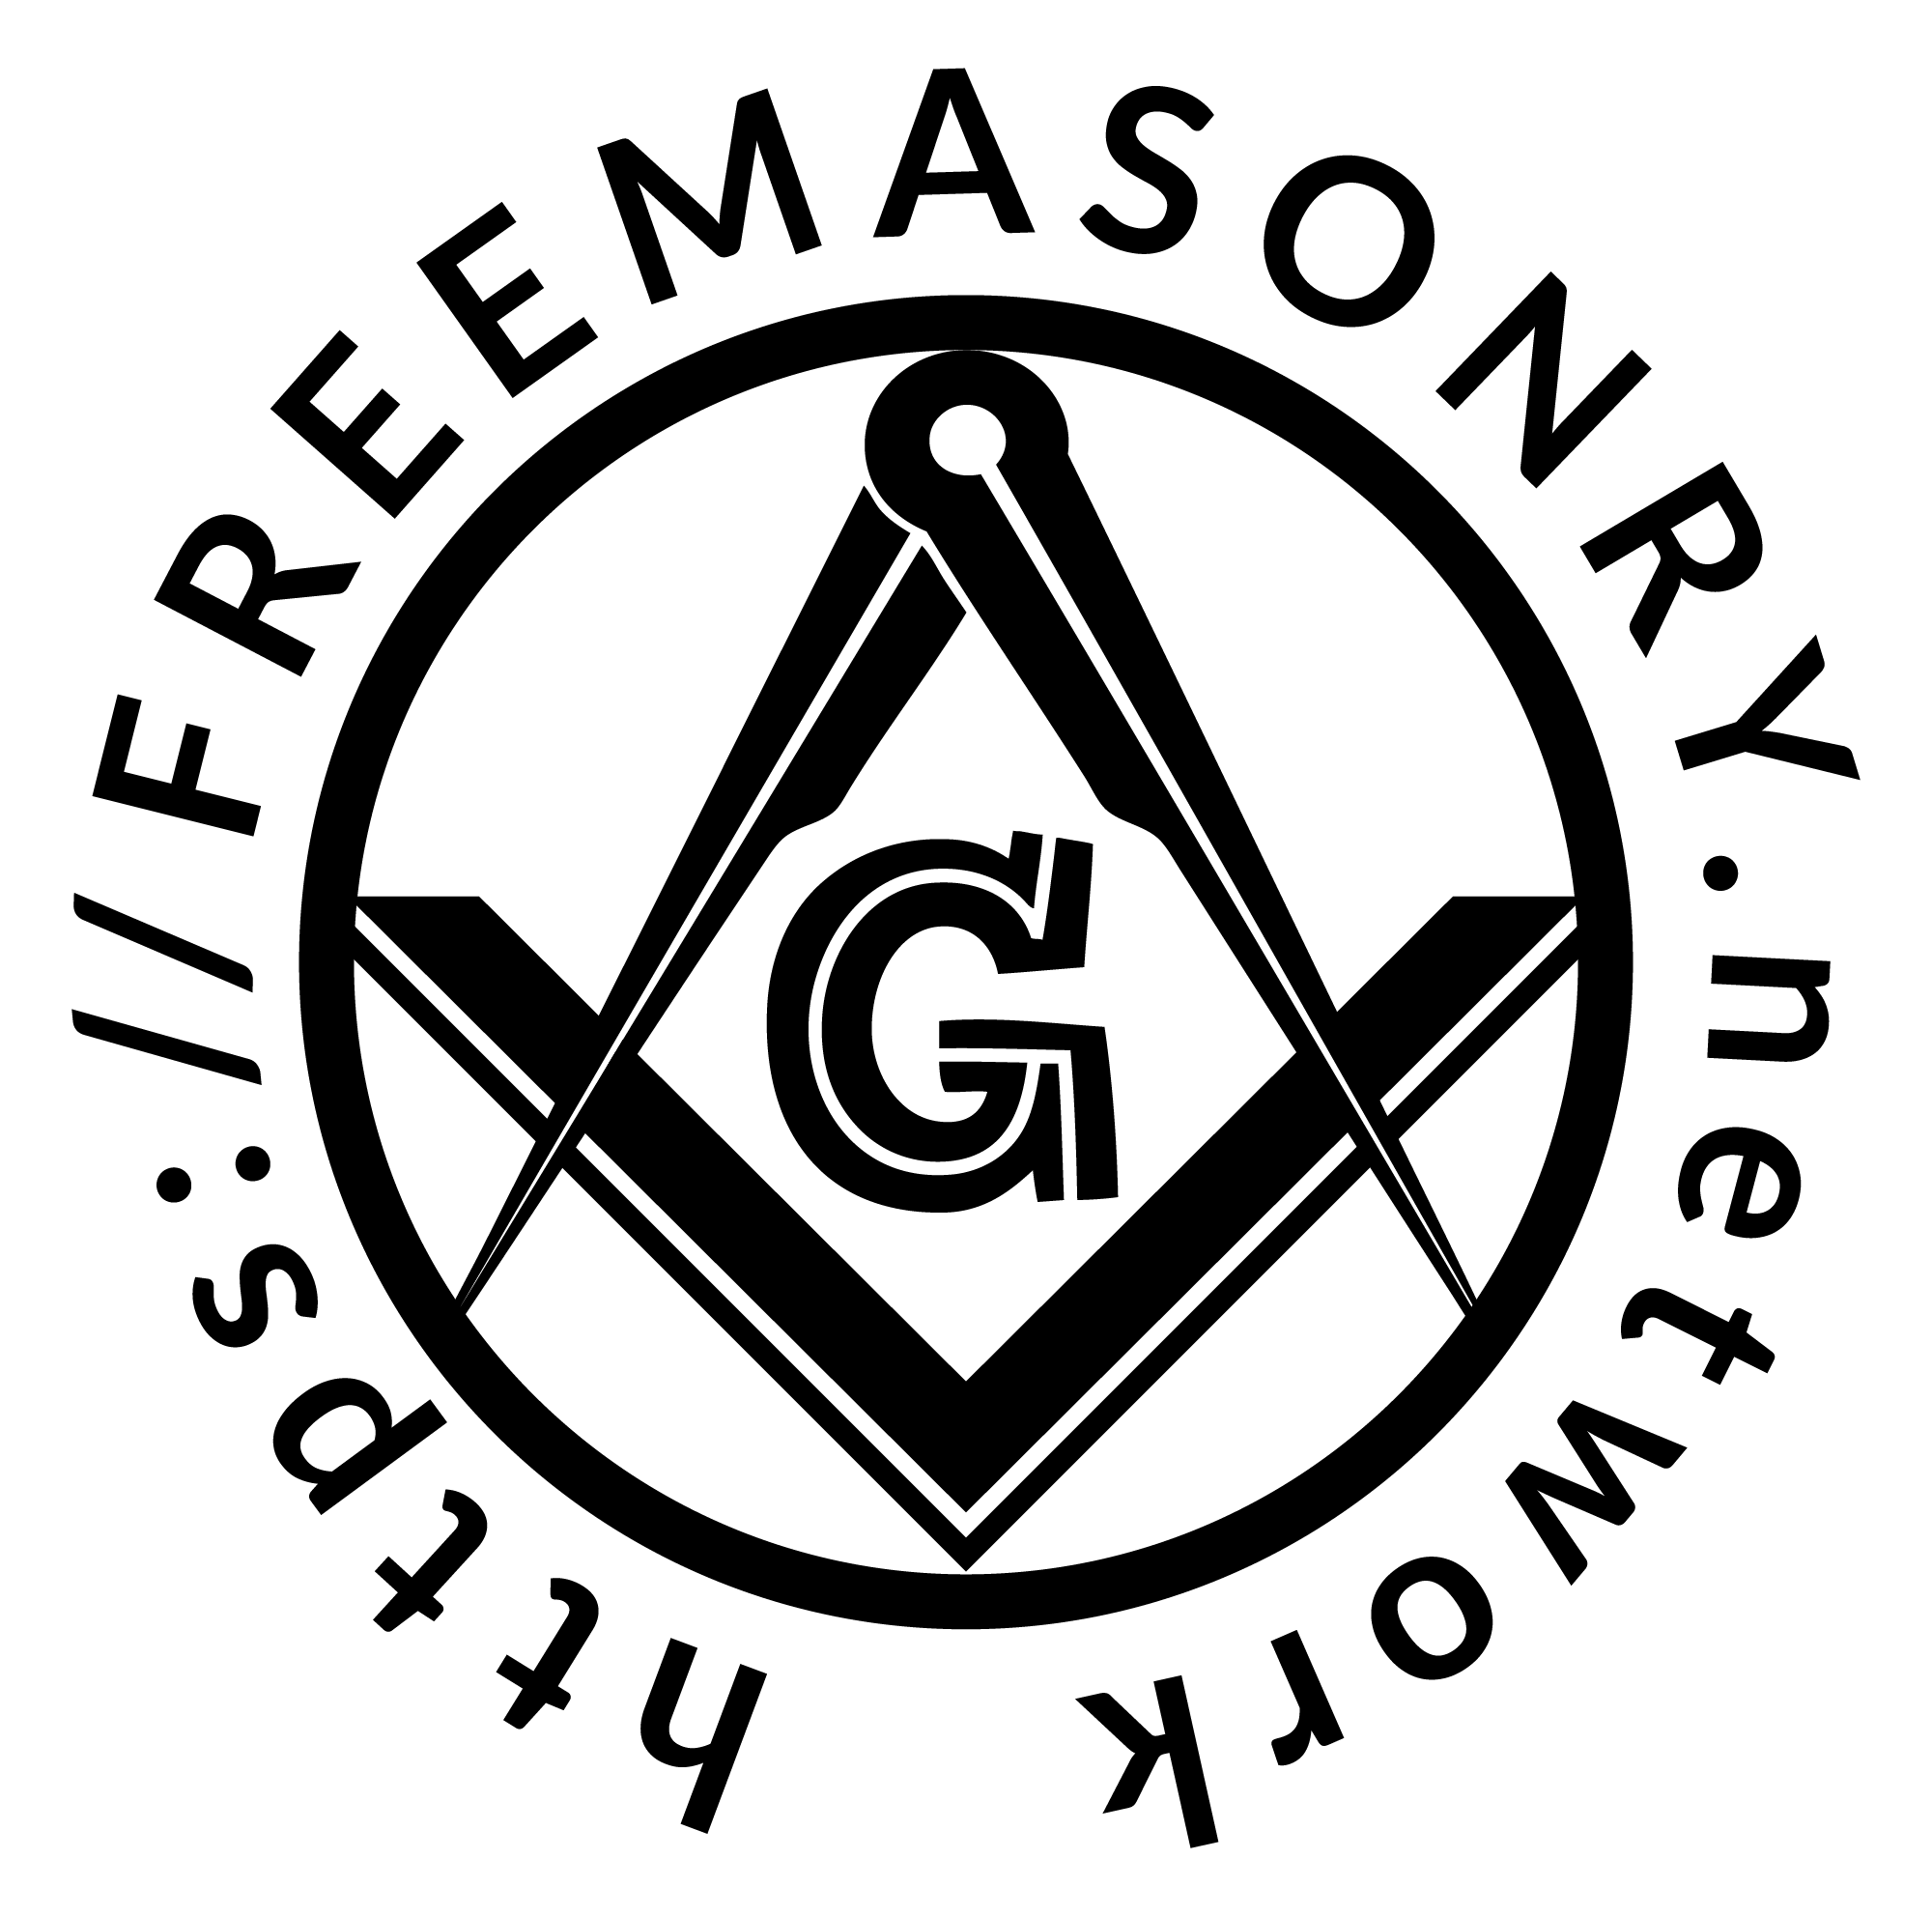 WHAT AFTER BECOMING A FREEMASON?